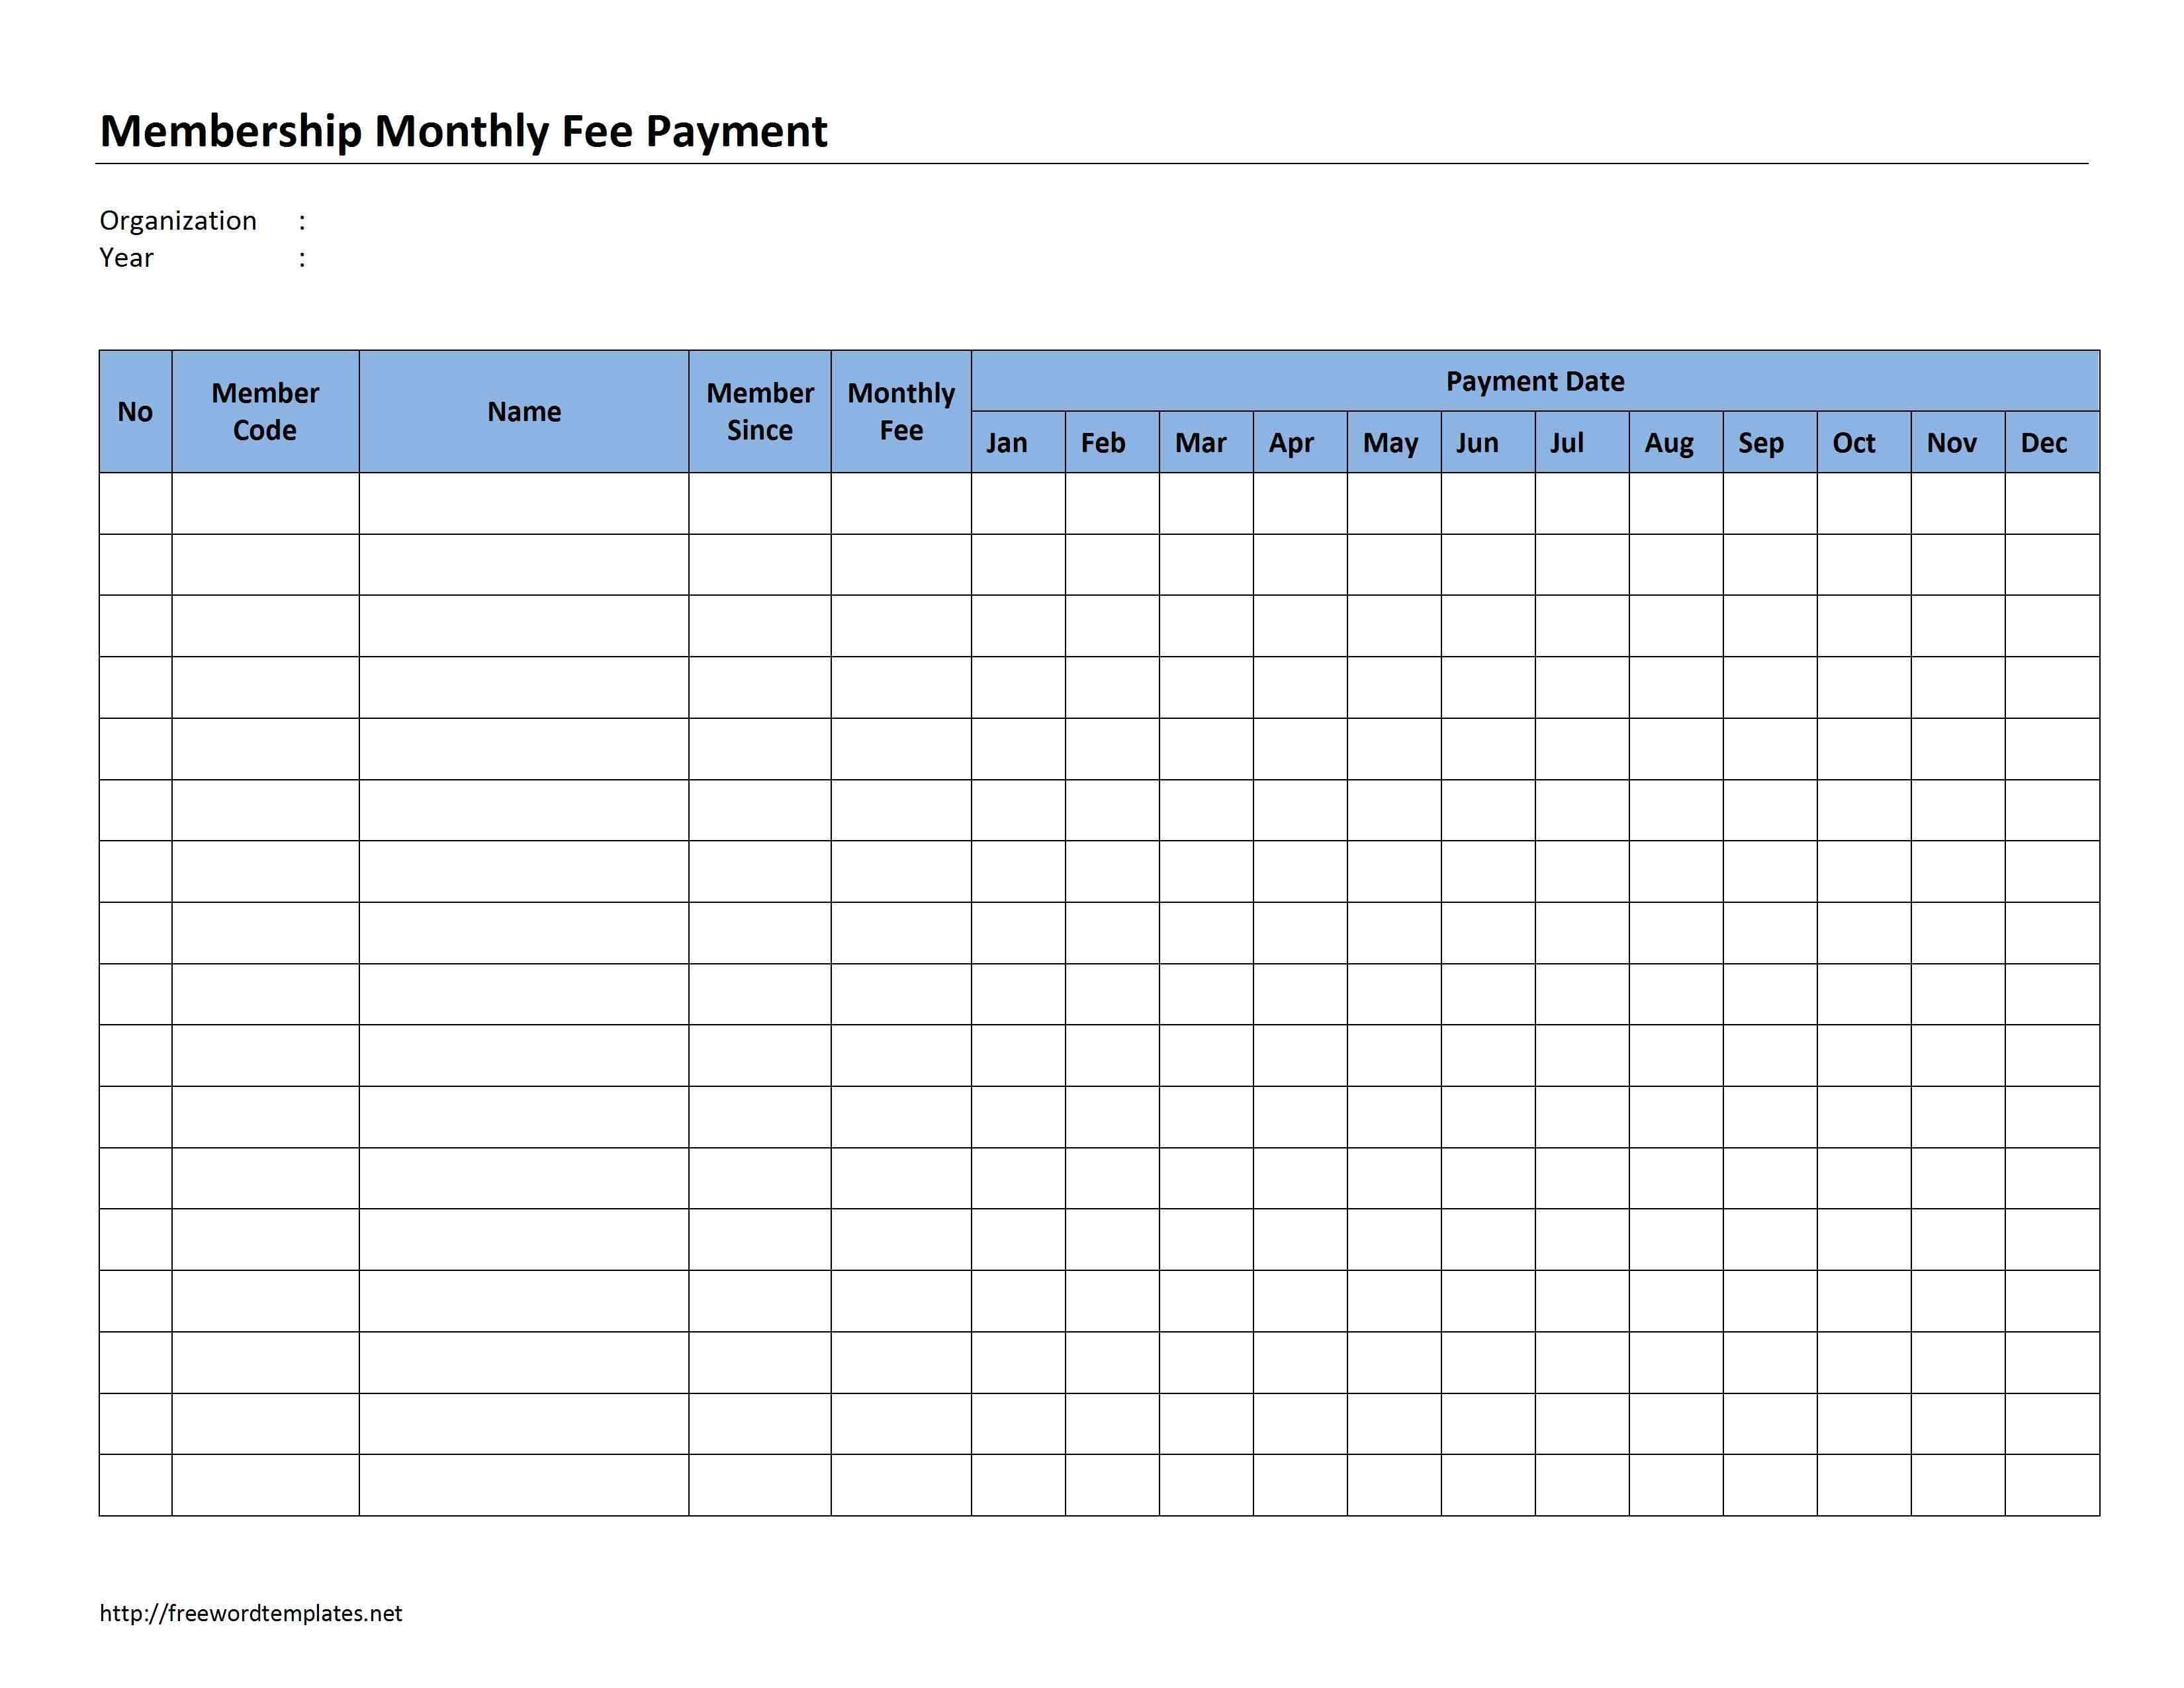 Pin By Celia Donlin On Sheets For Printing | Invoice regarding Free Printable Monthly Bill Payment Log